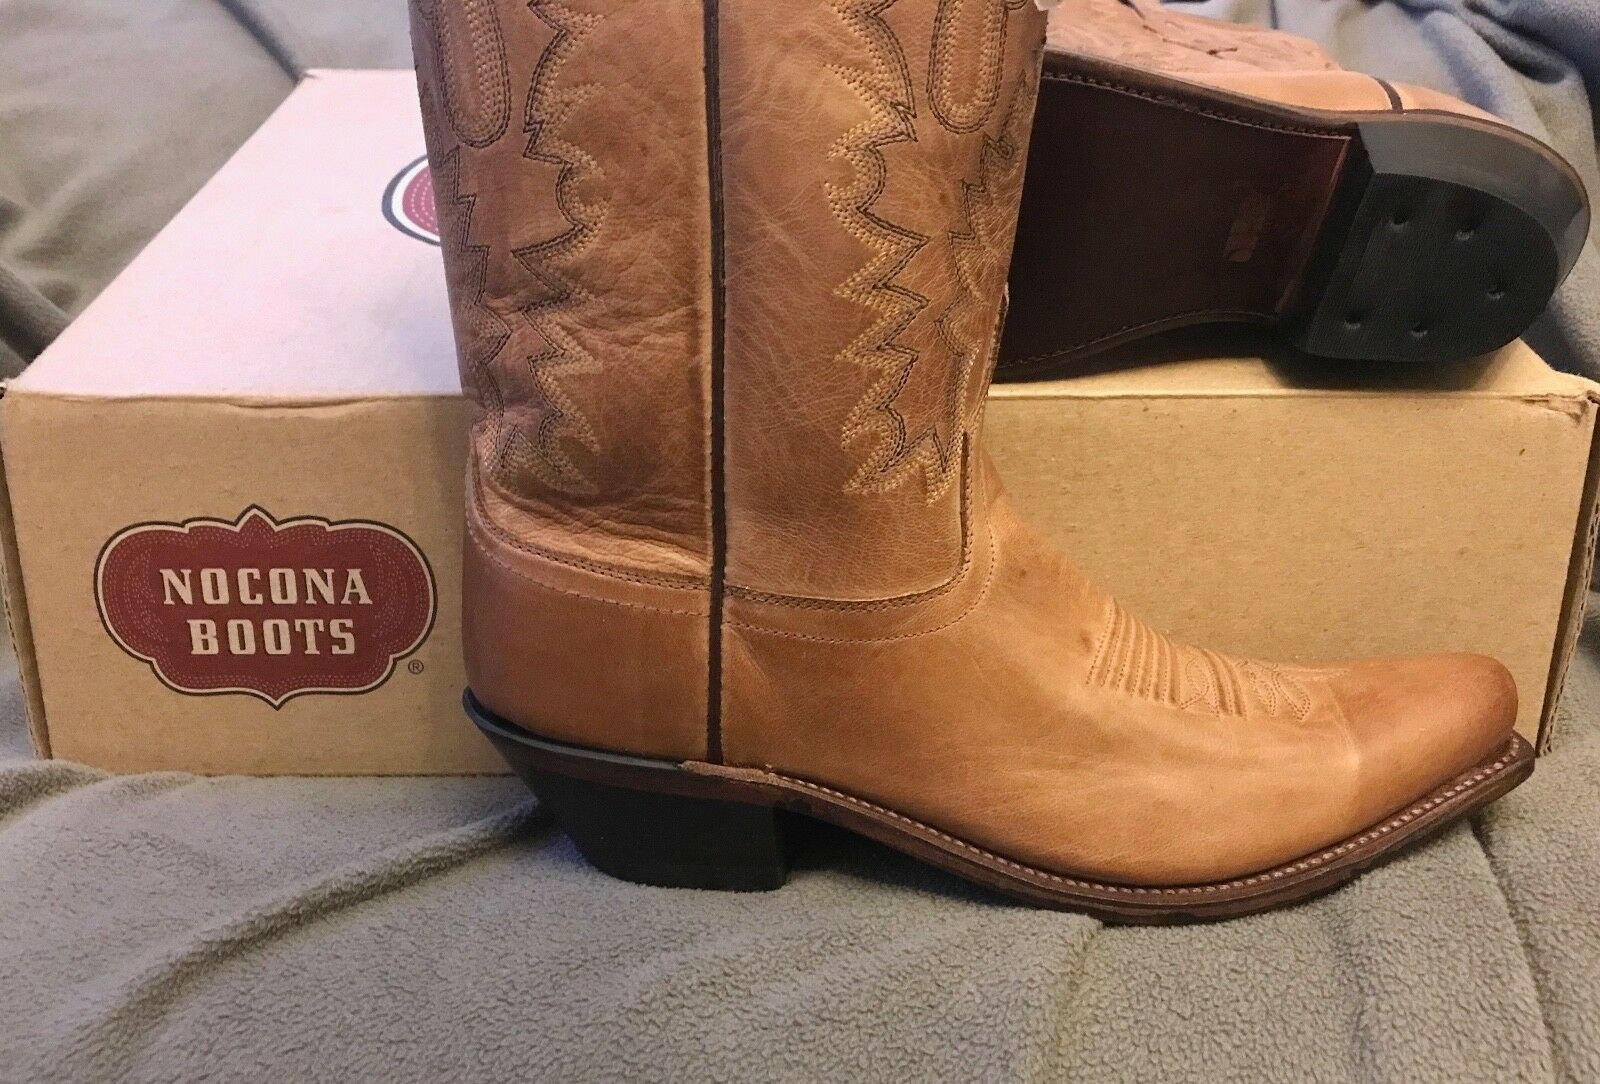 Nocona Boots Old West Size 8 New with Box